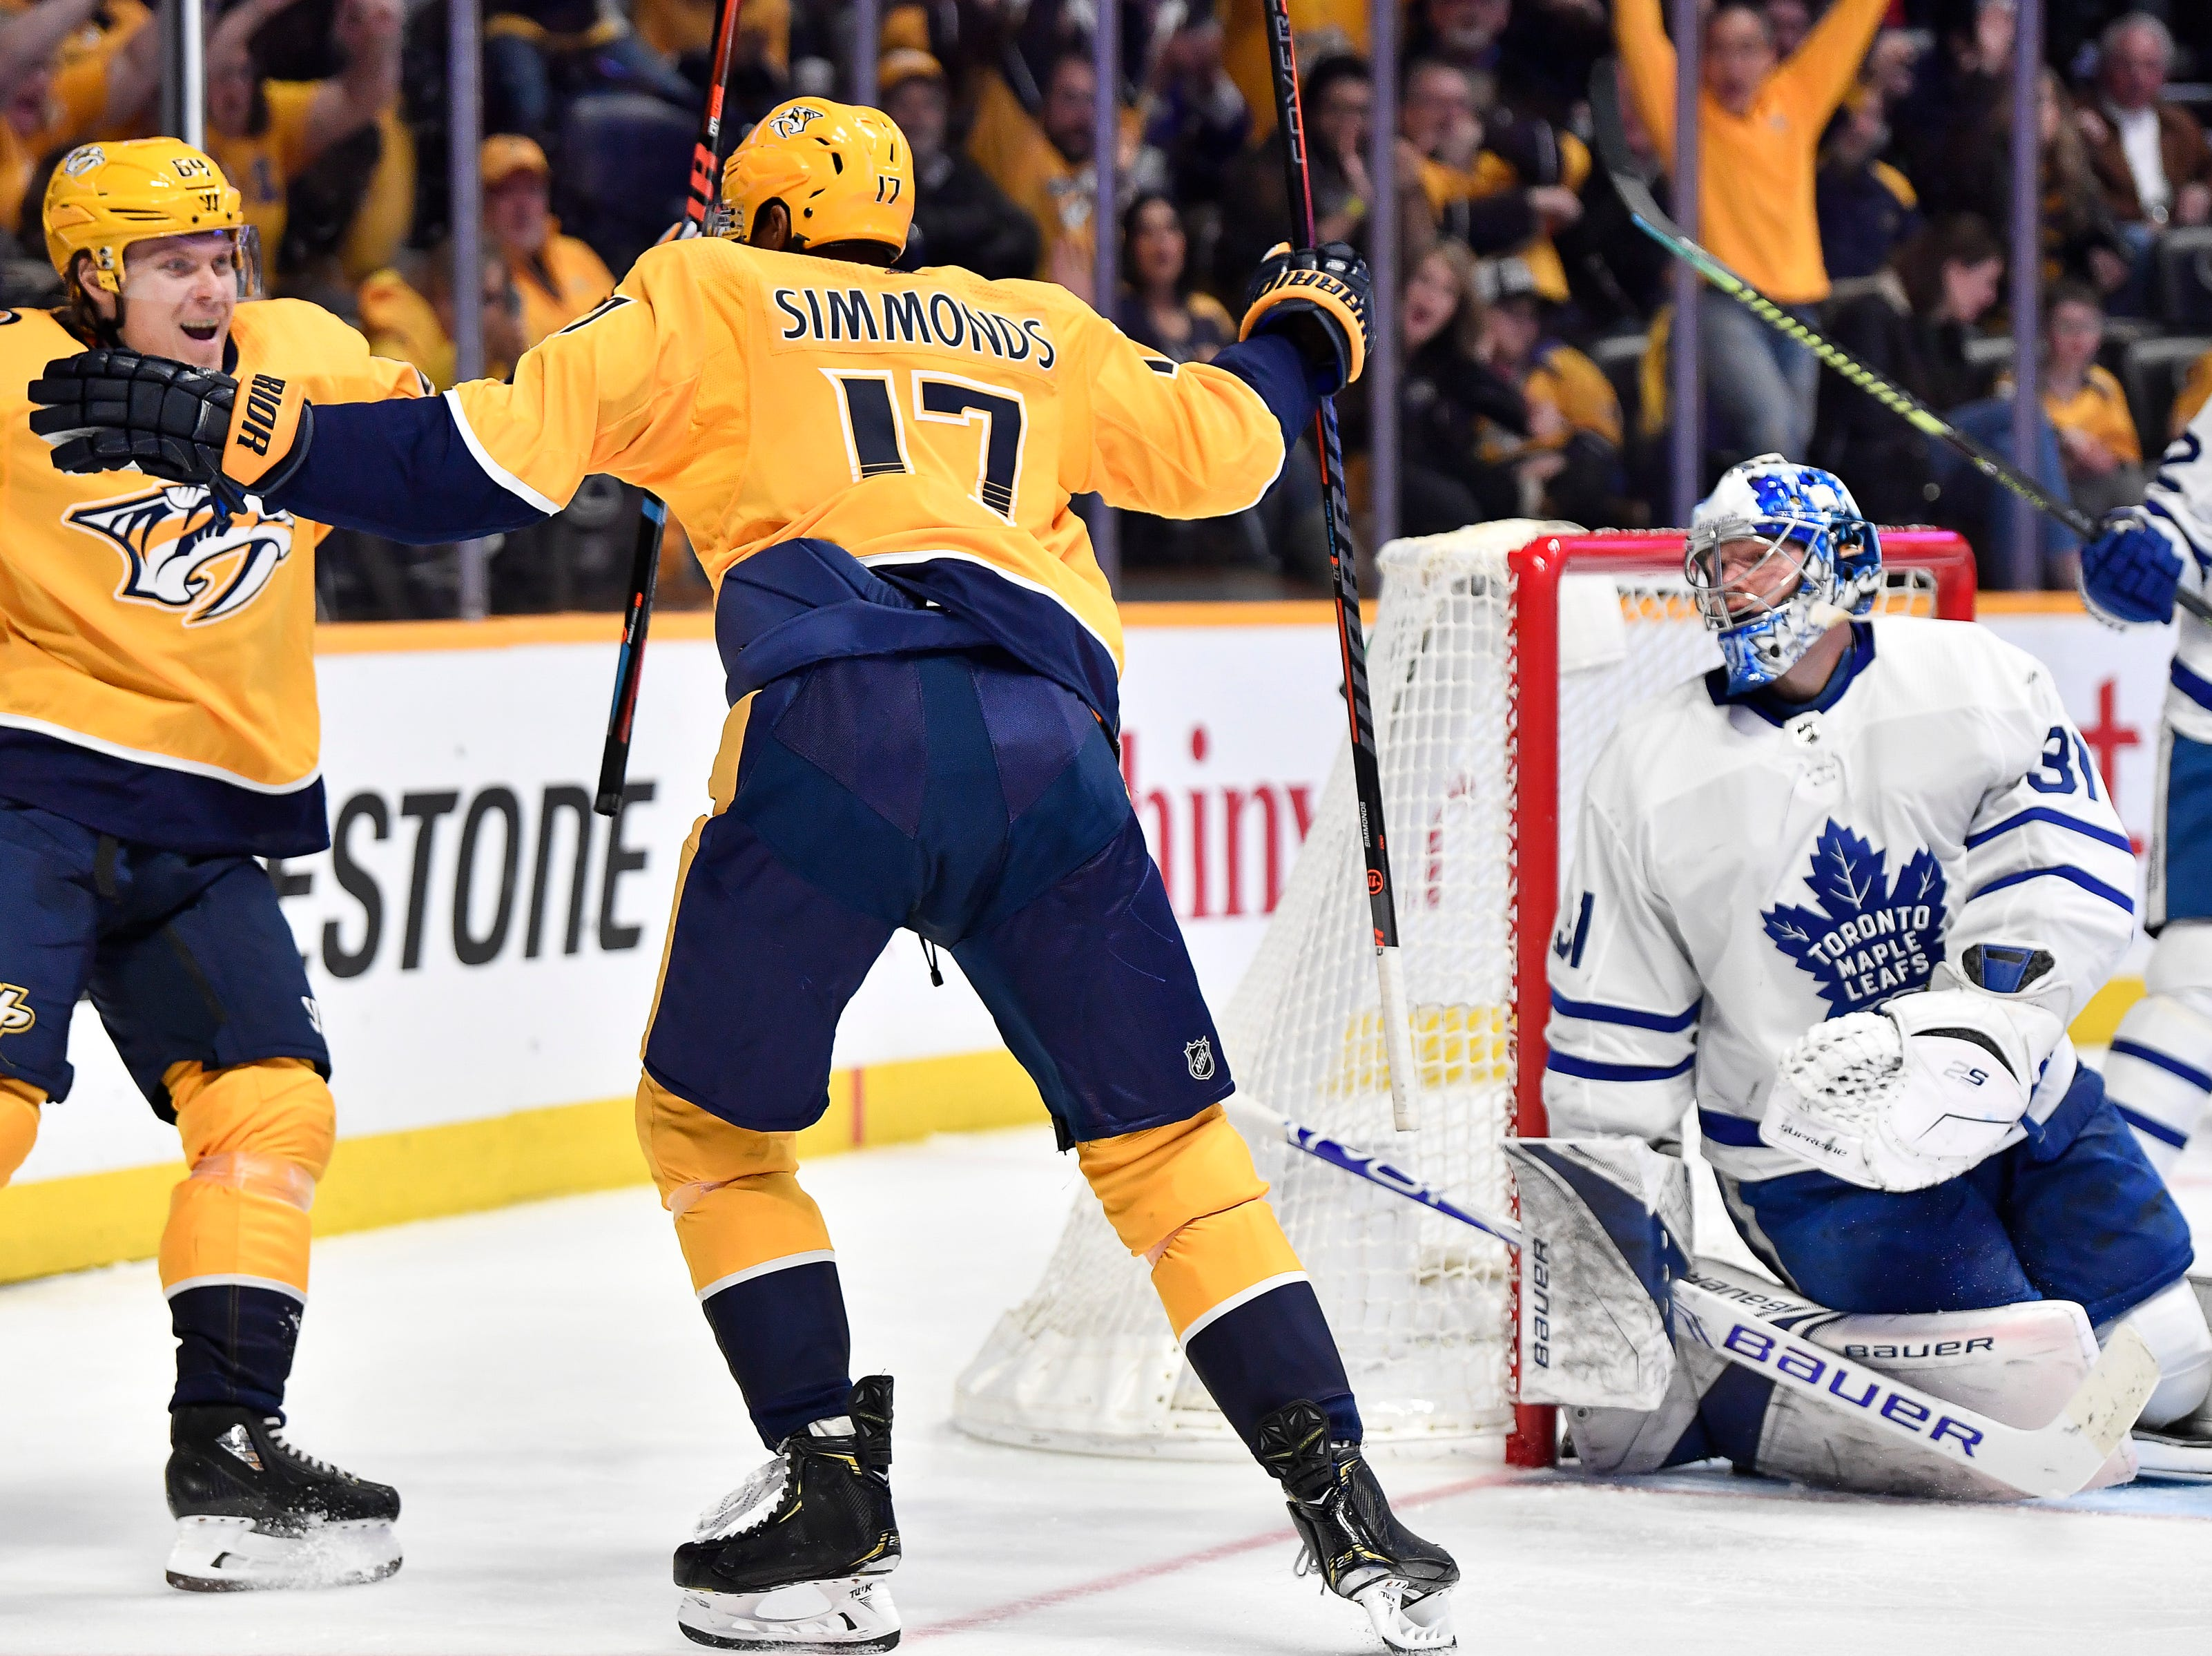 Mar. 19, 2019: Predators 3 Maple Leafs 0 -- Predators center Mikael Granlund (64) congratulates right wing Wayne Simmonds (17) after his goal against Maple Leafs goaltender Frederik Andersen (31) during the third period at Bridgestone Arena Tuesday, March 19, 2019 in Nashville, Tenn.